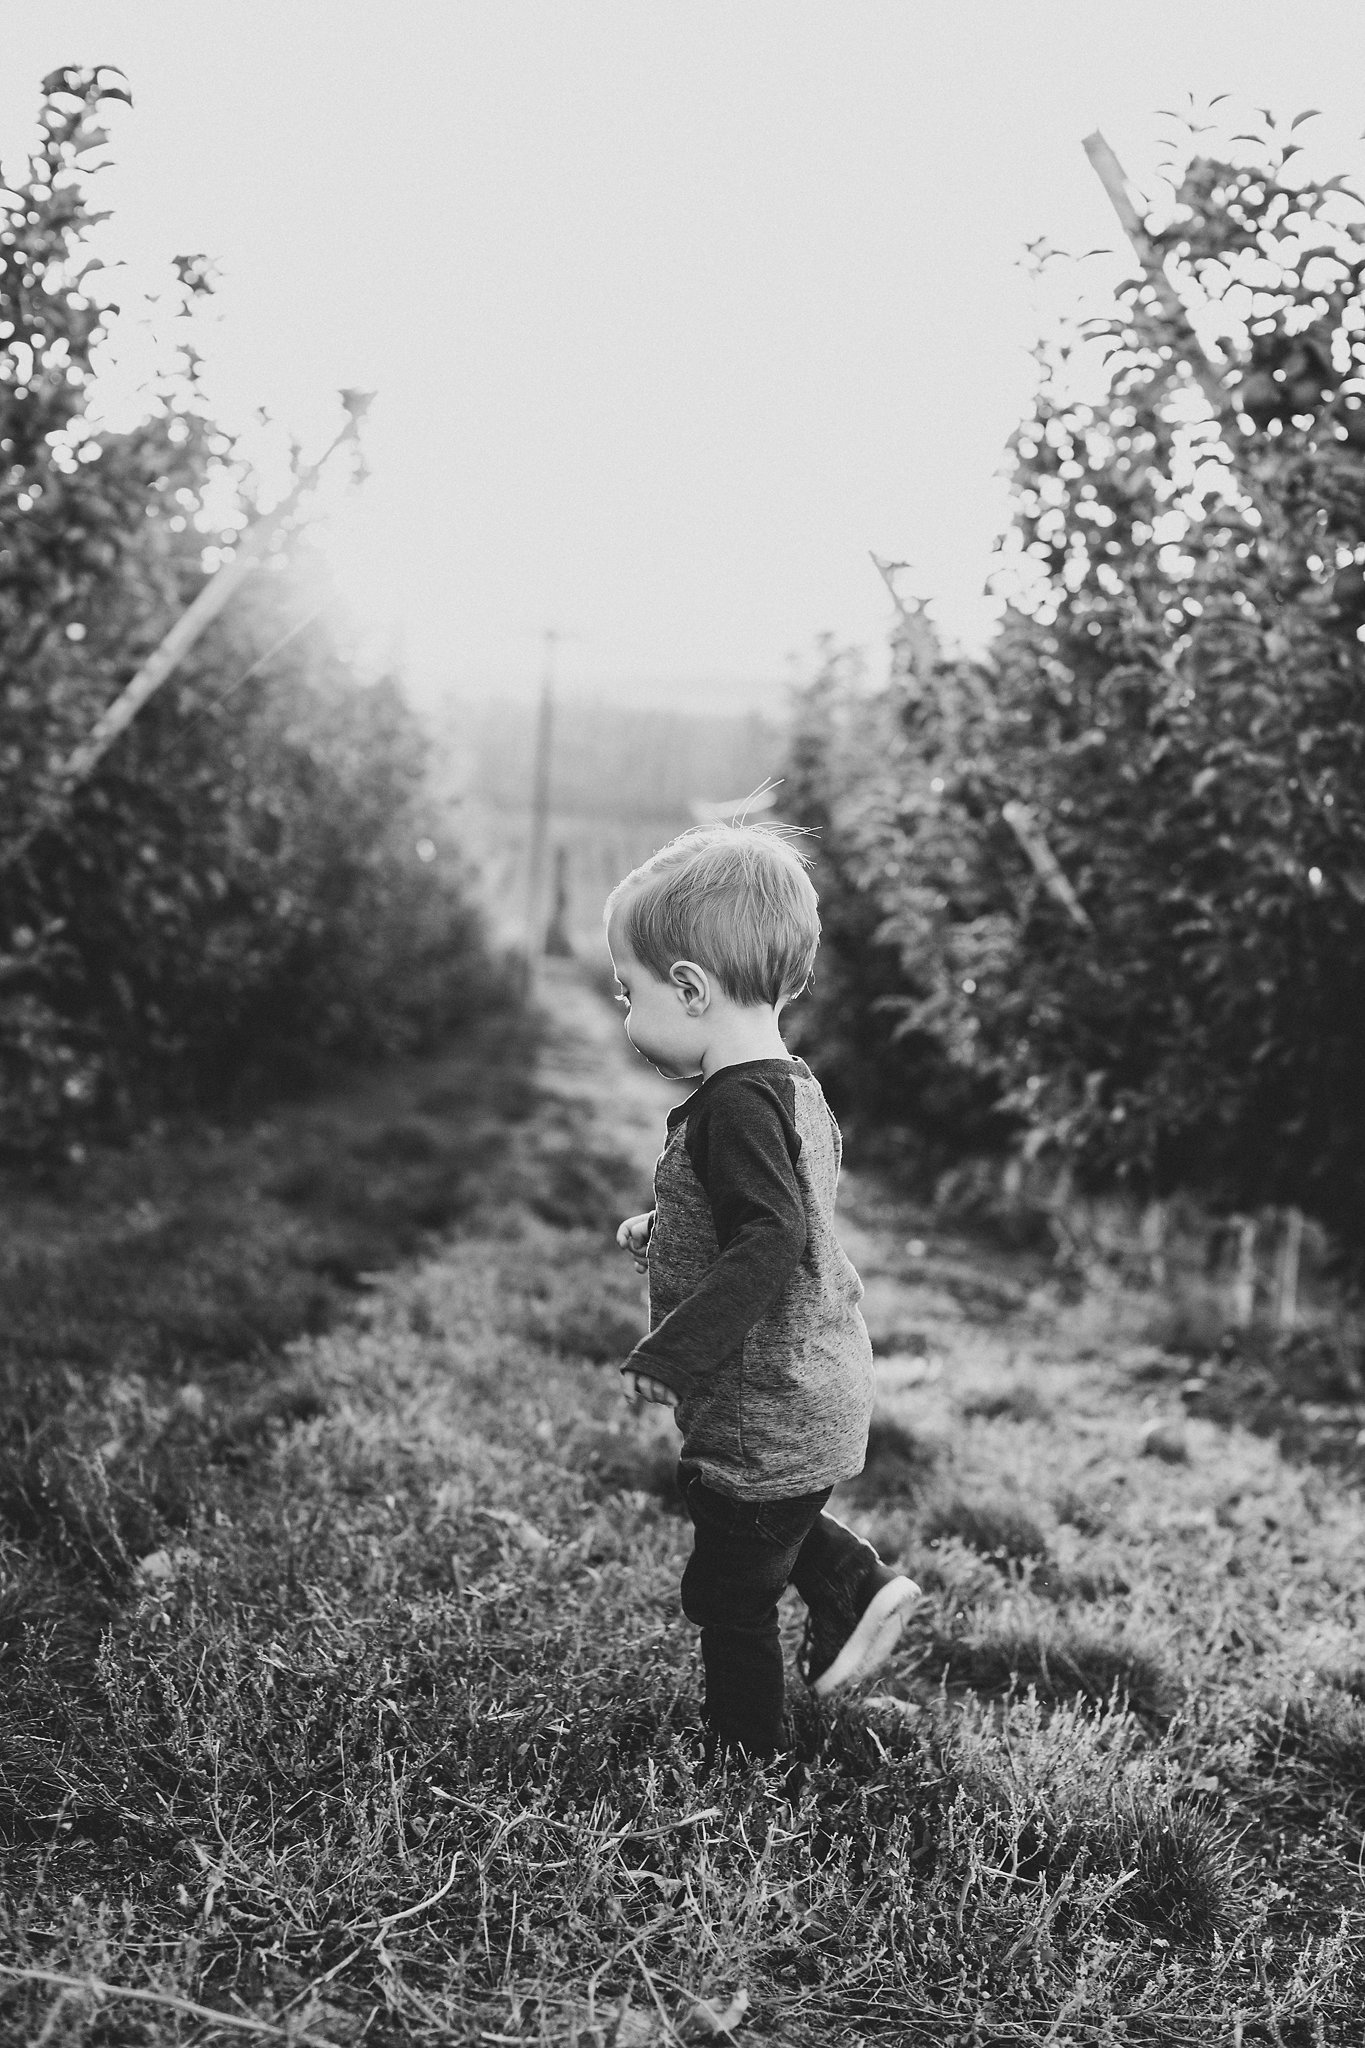 Little boy walking away in an apple orchard